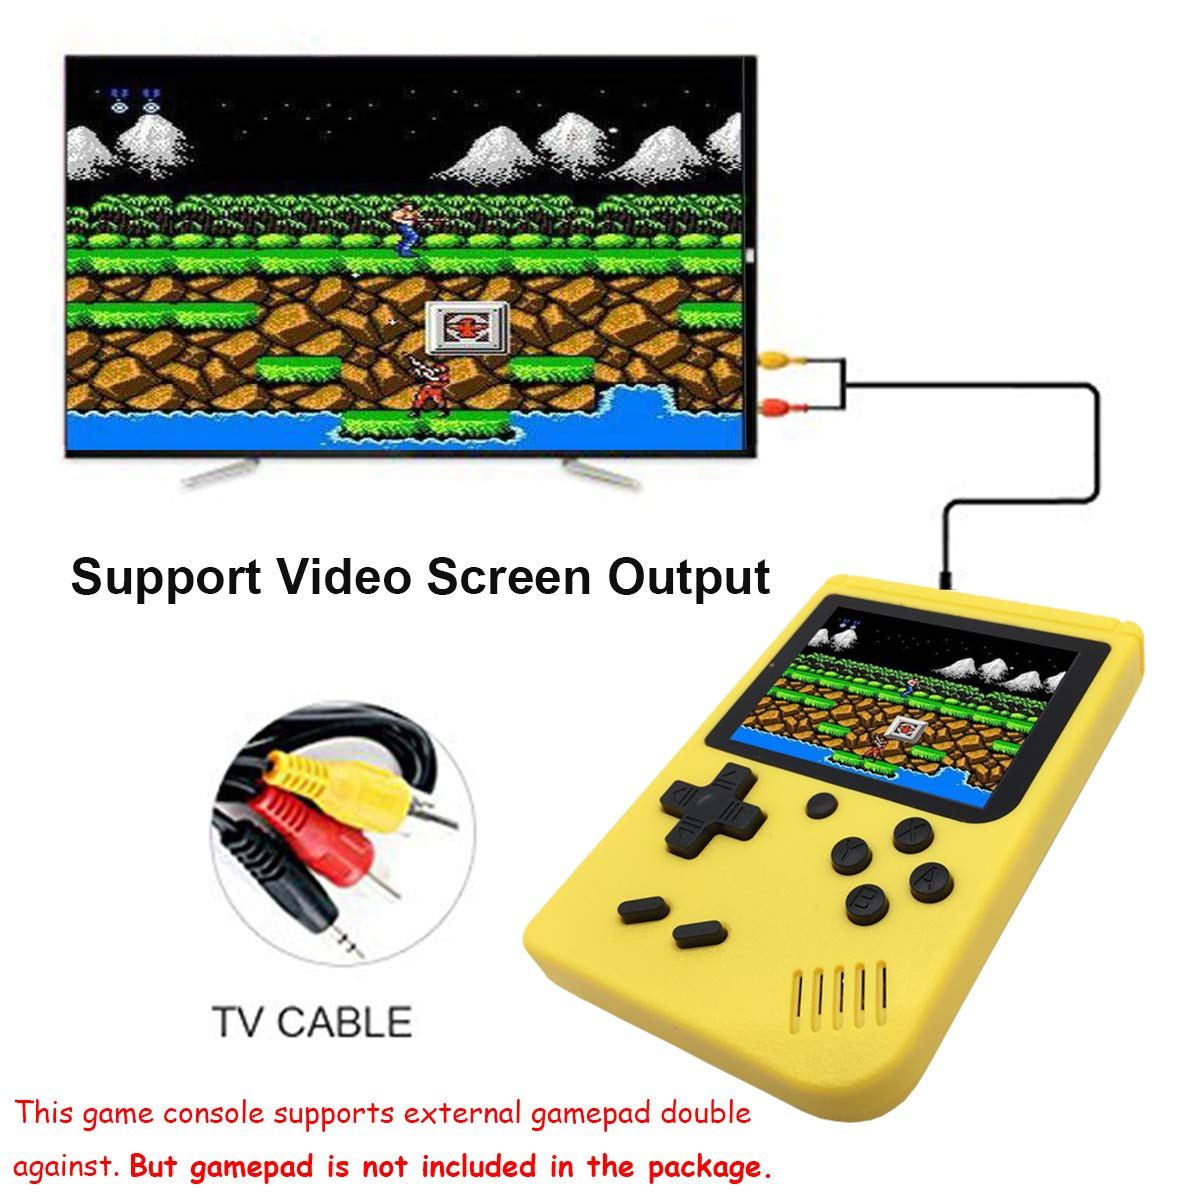 Fiotasy Handheld Retro FC Games Consoles with 400 NES Classic Games Portable Gameboy 3 Inch Color Screen 1000mAh Rechargeable Battery TV Output Birthday for Kids Boys Girls Men Women